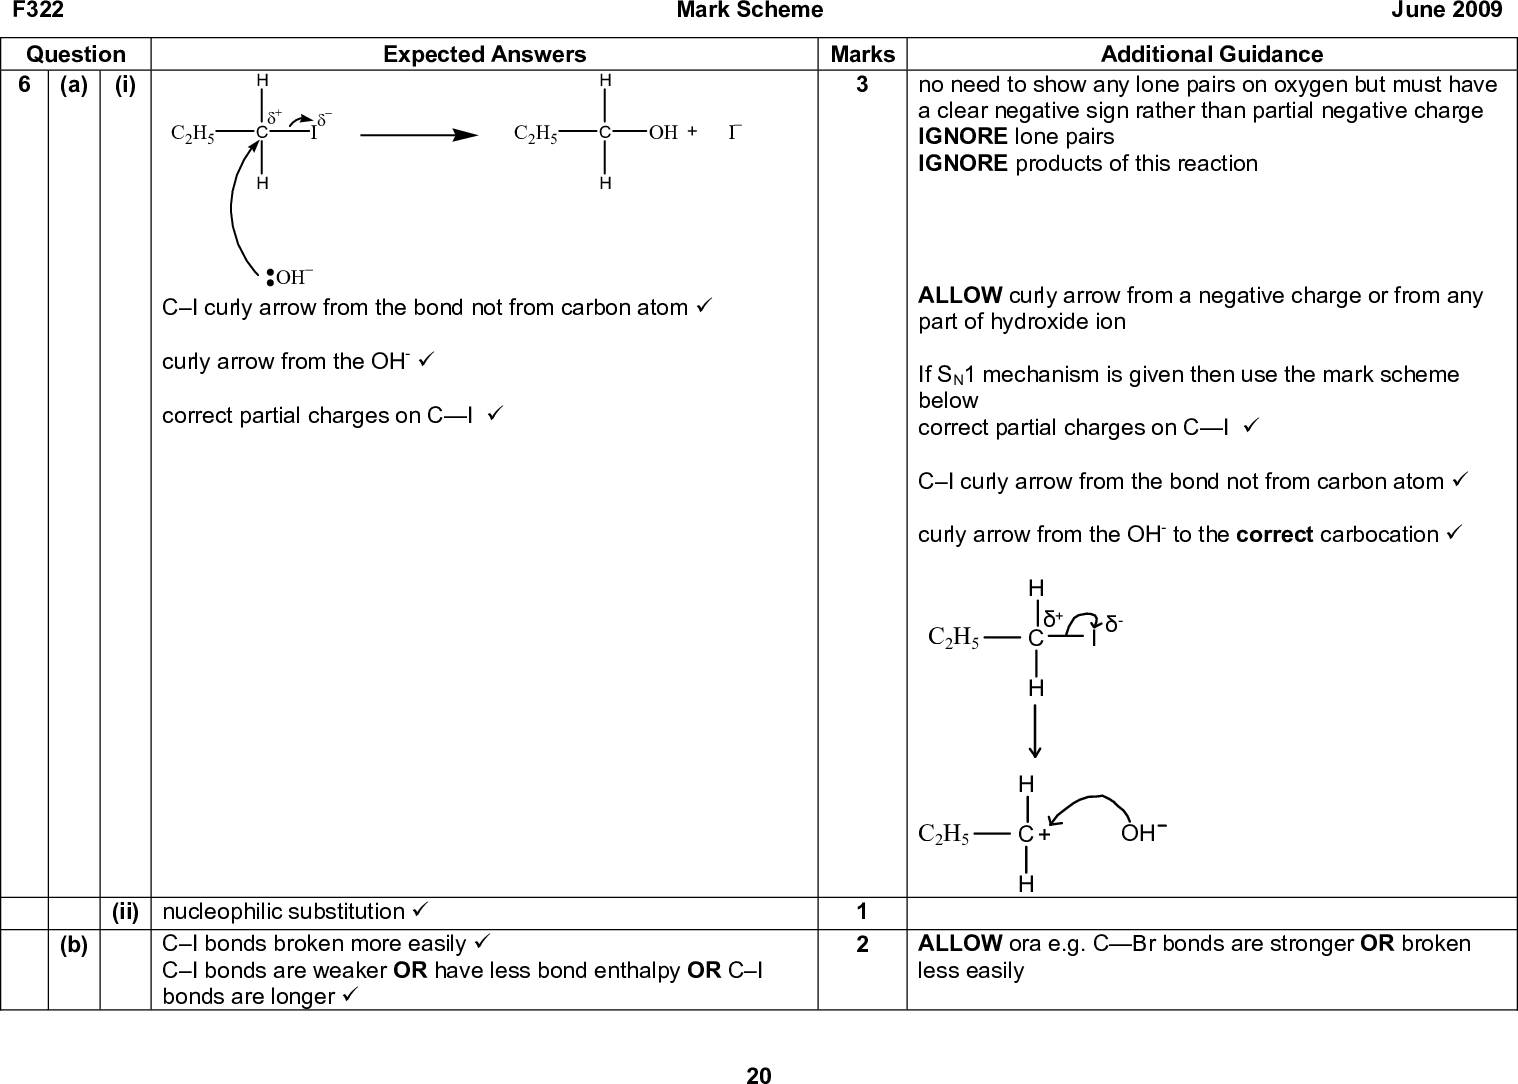 F322 Question 6 (i) (a) Mark Scheme June 2009 C2H5 (cid:71)(cid:14) C (cid:71)(cid:16) Expected Answers C2H5 OH I(cid:16) Marks OH(cid:16) CI curly arrow from the bond not from carbon atom (cid:57) curly arrow from the OH- (cid:57) correct partial charges on CI (cid:57) Additional Guidance no need to show any lone pairs on oxygen but must have a clear negative sign rather than partial negative charge IGNORE lone pairs IGNORE products of this reaction ALLOW curly arrow from a negative charge or from any part of hydroxide ion If SN1 mechanism is given then use the mark scheme below correct partial charges on CI (cid:57) CI curly arrow from the bond not from carbon atom (cid:57) curly arrow from the OH- to the correct carbocation (cid:57) C2H5 C2H5 H + C - OH (b) (ii) nucleophilic substitution (cid:57) CI bonds broken more easily (cid:57) CI bonds are weaker OR have less bond enthalpy OR CI bonds are longer (cid:57) 1 2 20 ALLOW ora e.g. CBr bonds are stronger OR broken less easily<br />  F322 Question (c) Any TWO from: Mark Scheme June 2009 Marks 12 Additional Guidance IGNORE because chlorine radicals stay in the stratosphere ALLOW other named ozone depleting substances e.g. NO and HFCs Free bonds at bond ends must be present ALLOW minor slip e.g. missing one hydrogen and left as a stick ALLOW more than two repeat units but must be a whole number of repeat units IGNORE brackets, use of numbers and n in the drawn structure ALLOW skeletal formula ALLOW CH2CHF IGNORE biodegradable used as a fuel is insufficient releases energy is insufficient ALLOW burning plastics to release energy ALLOW organic feedstock / raw materials to make organic compounds Expected Answers CFCs take many years to reach the ozone layer OR long residence time (cid:57) CFCs are still being used (cid:57) there are other ozone depleting substances (cid:57) (d) (i) (cid:57) (ii) (e) (cid:57) Any two from: separation into types and recycling OR sort plastics, melt and remould (cid:57) combustion for ene